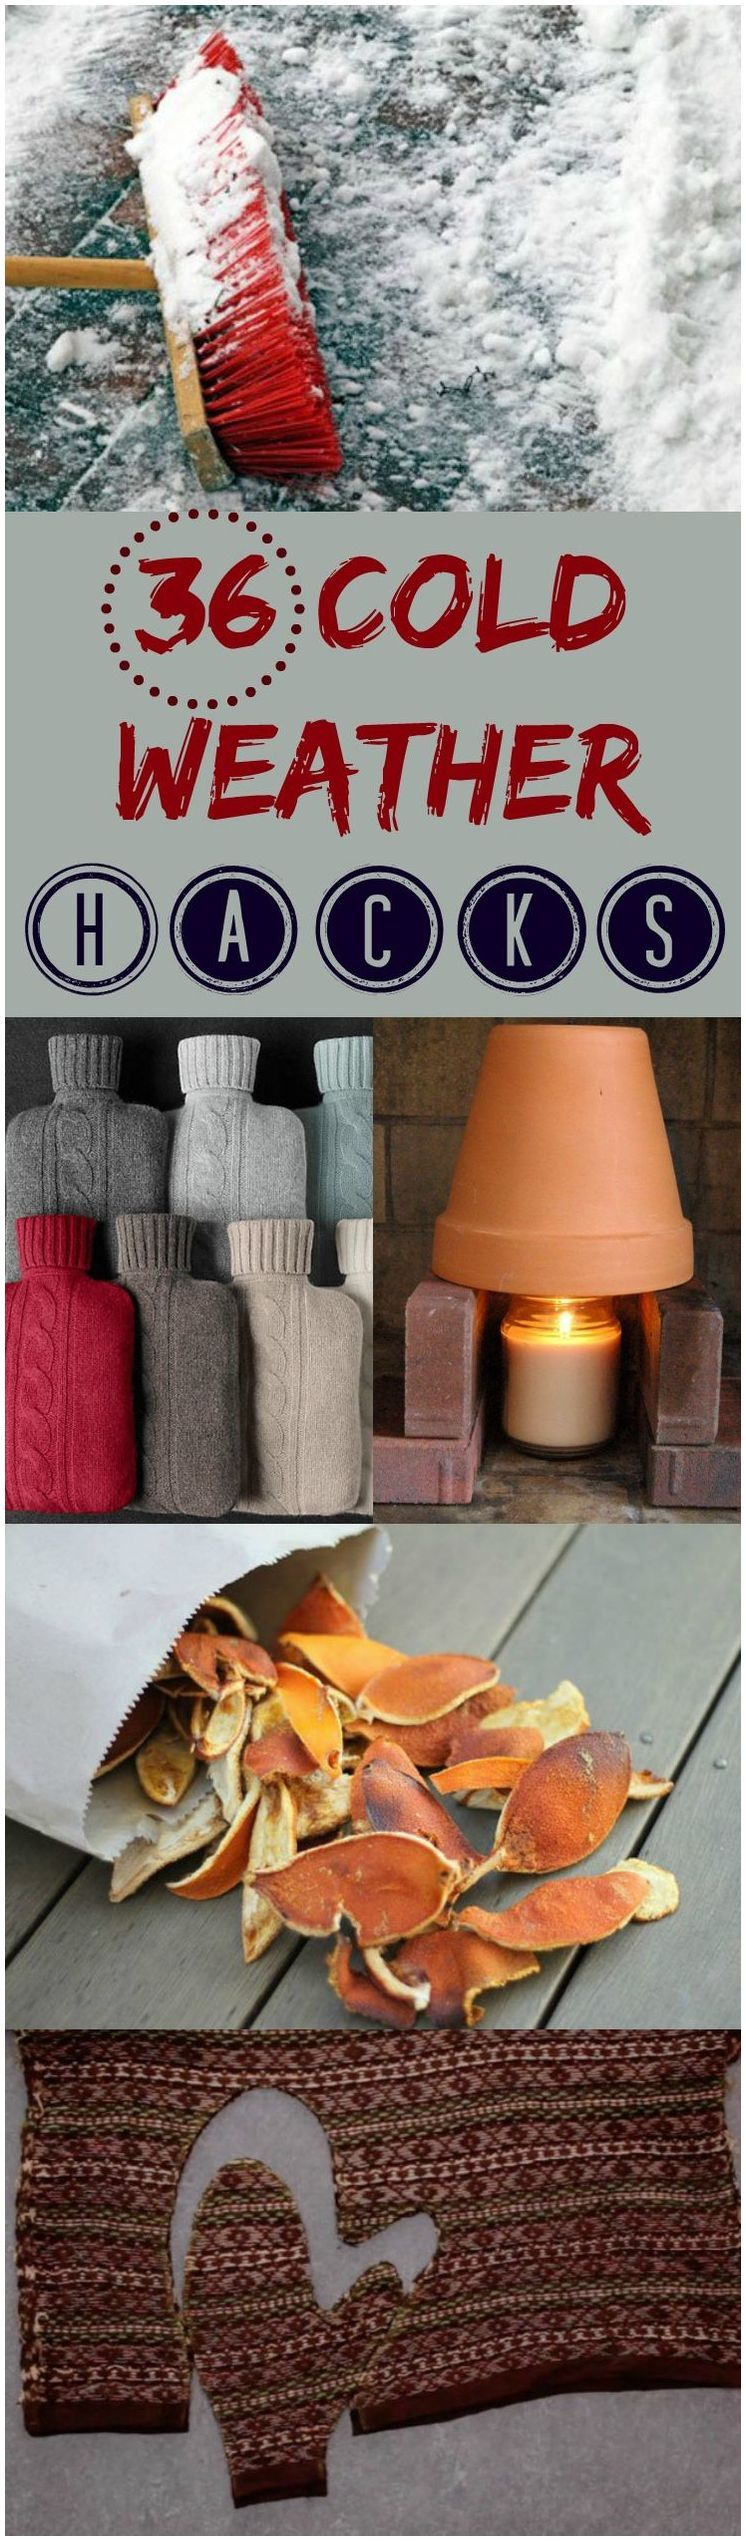 Camping Hacks - Camping Hacks To Help You Out -- Click ...